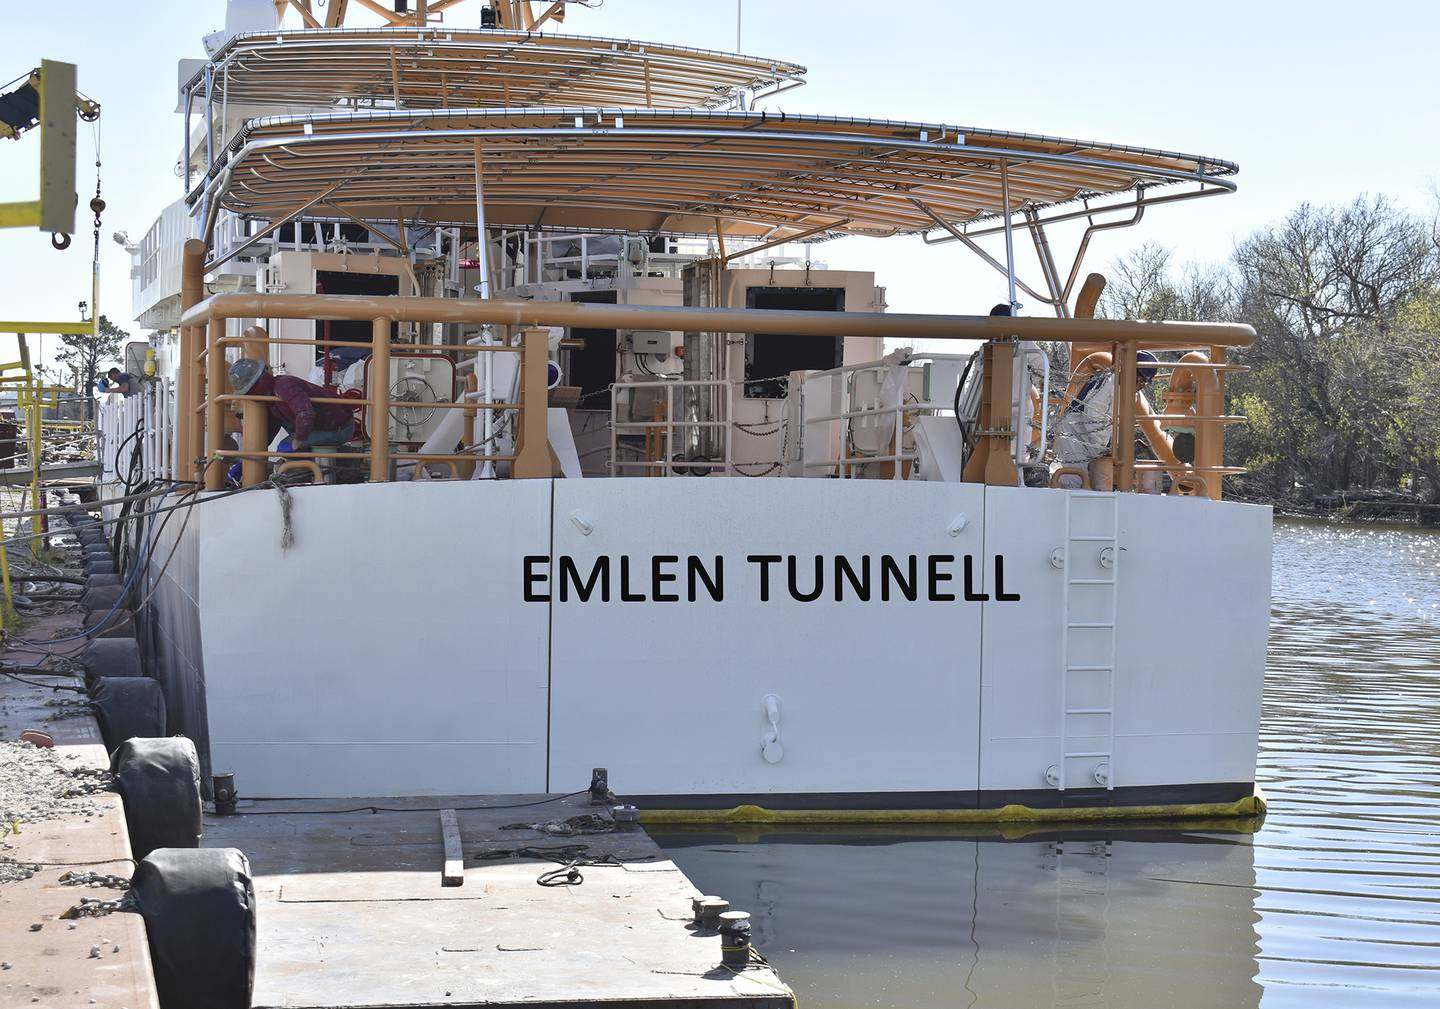 This undated photo provided by the United States Coast Guard shows a U.S. Coast Guard cutter named for Emlen Tunnell, docked in Bollinger Shipyard, in Lockport, La.